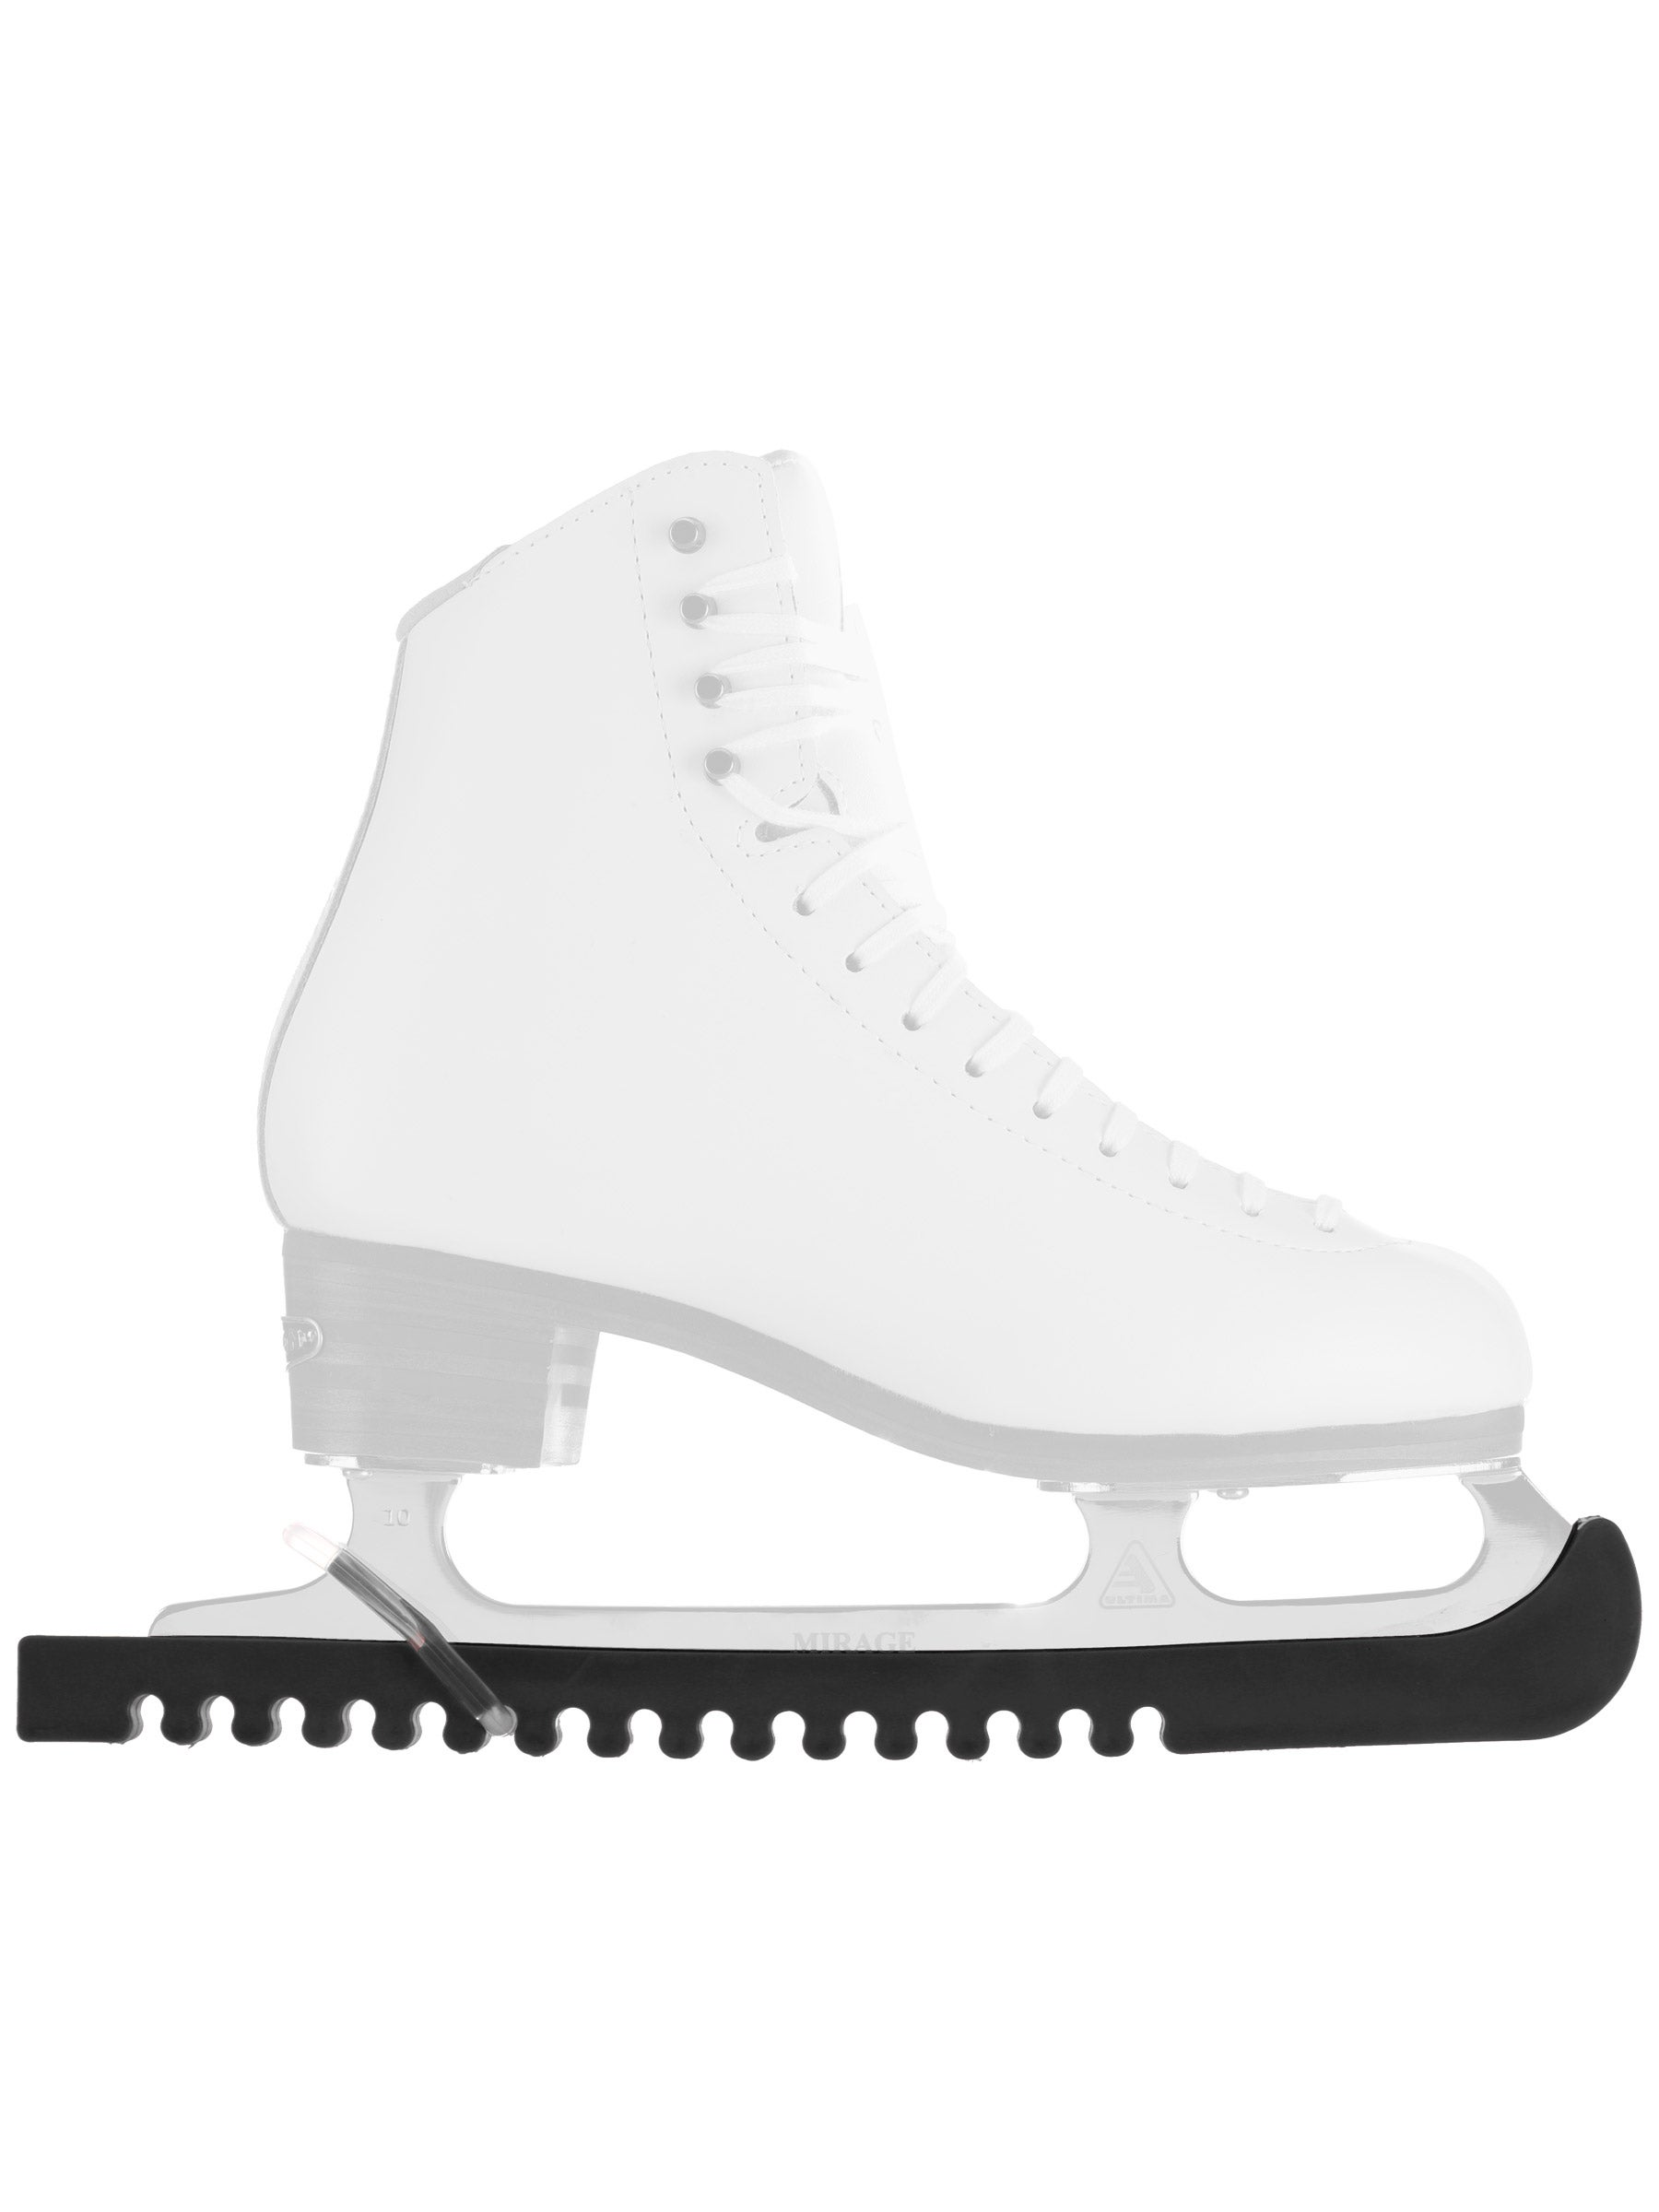 A Soft Terry Blade Covers For Ice Skates